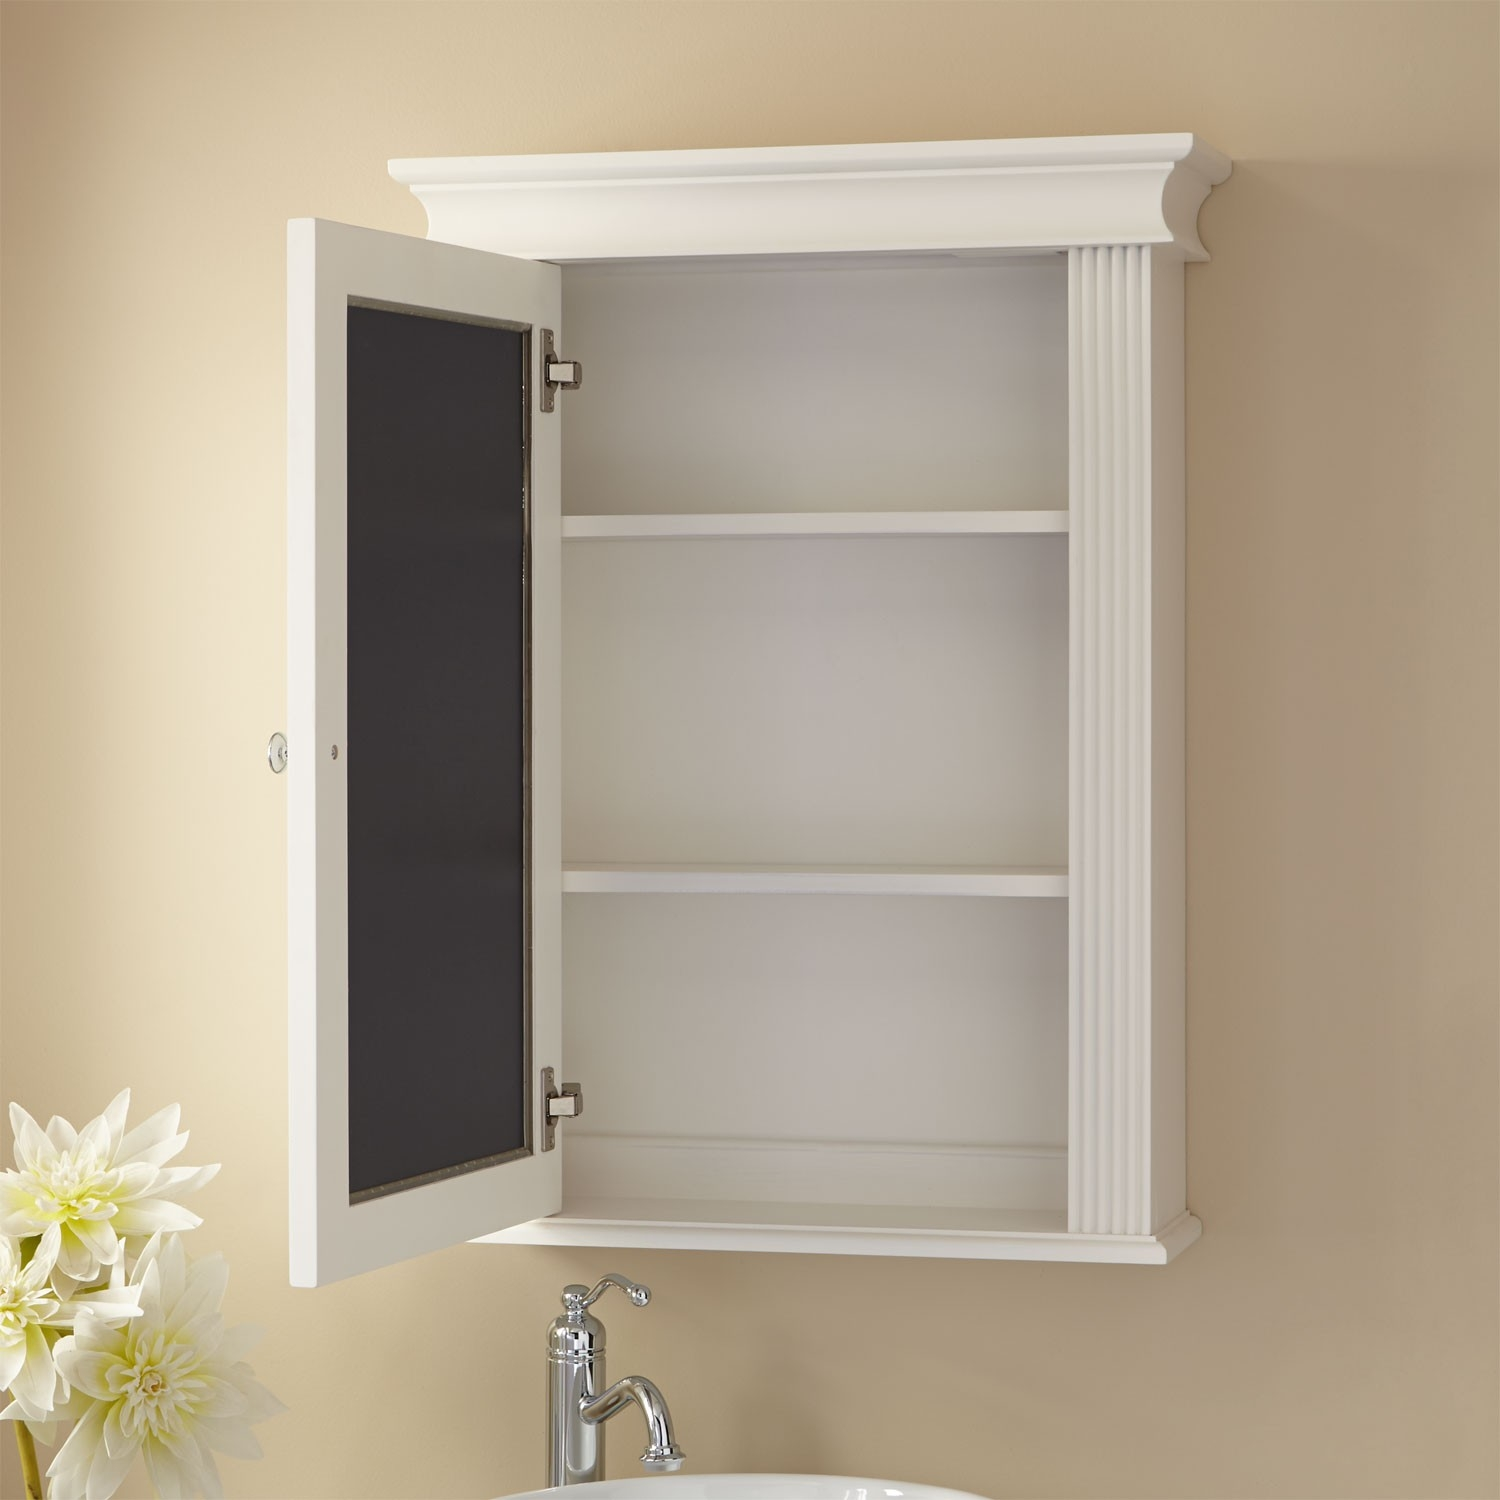 Large Wood 3 Door Bathroom Medicine Cabinet – White